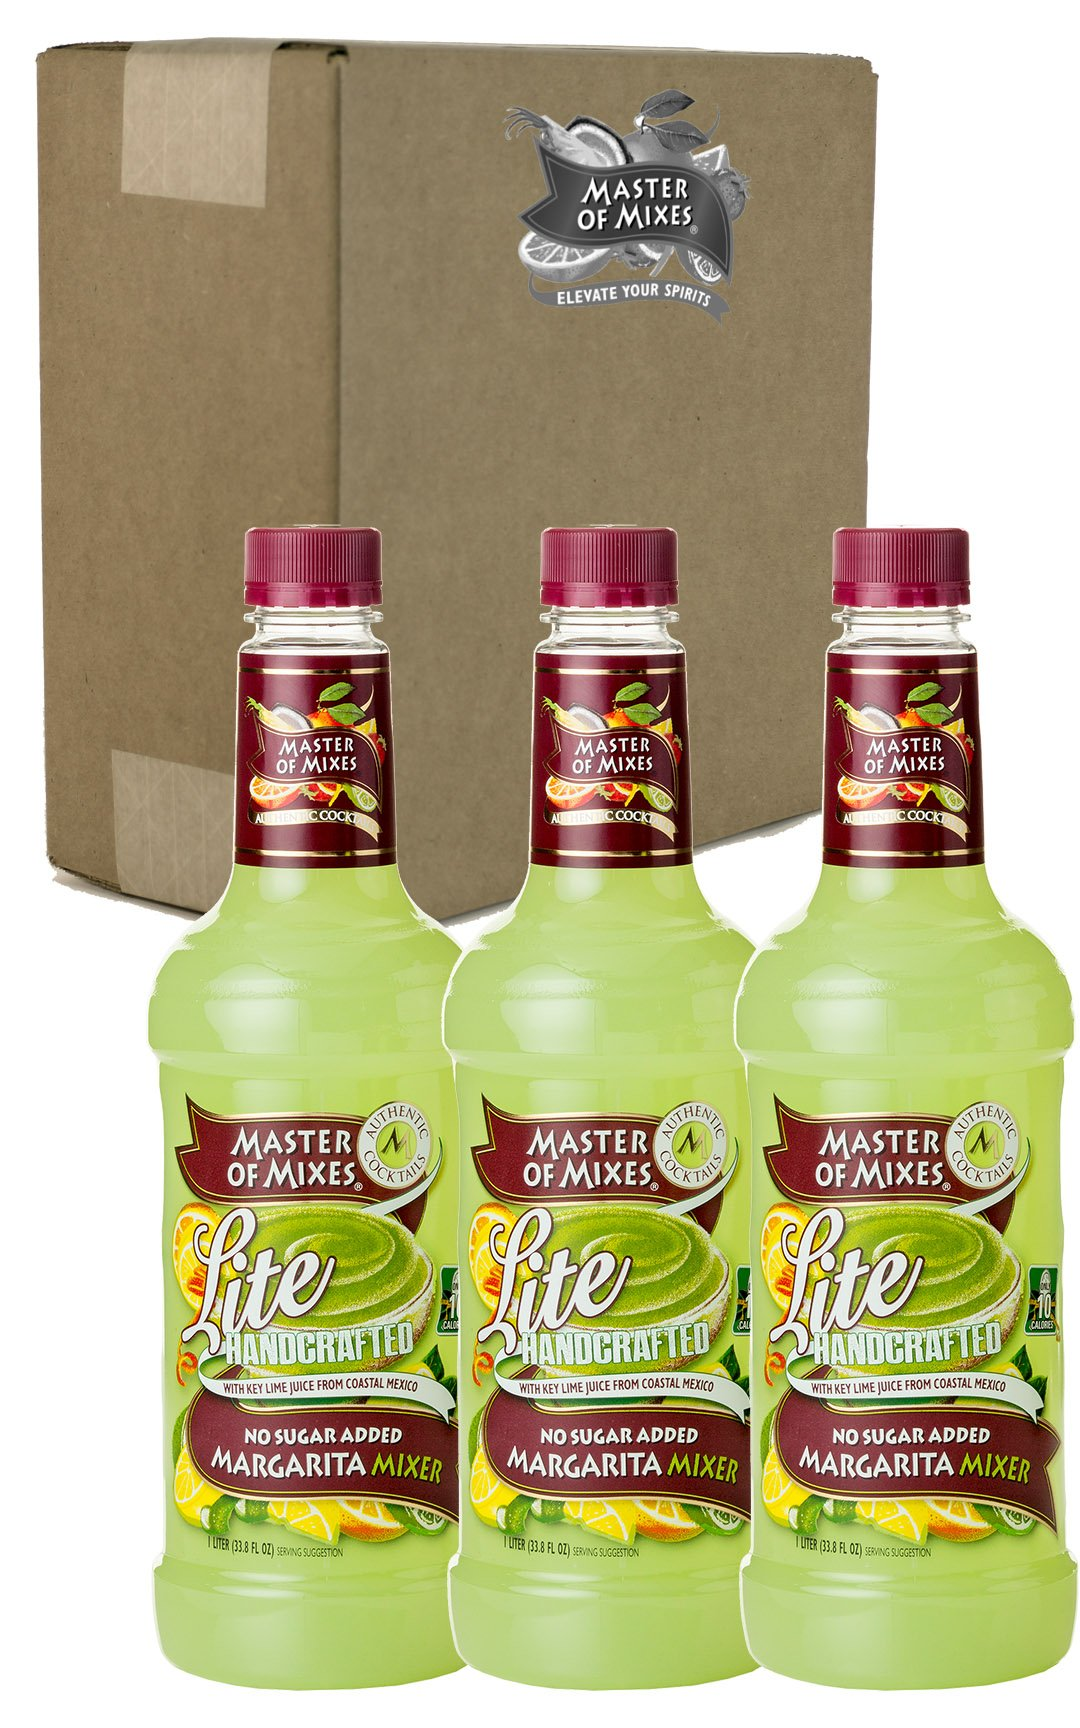 Master of Mixes Margarita Lite Drink Mix, Ready To Use, 1 Liter Bottle (33.8 Fl Oz), Pack of 3 by Master of Mixes (Image #1)